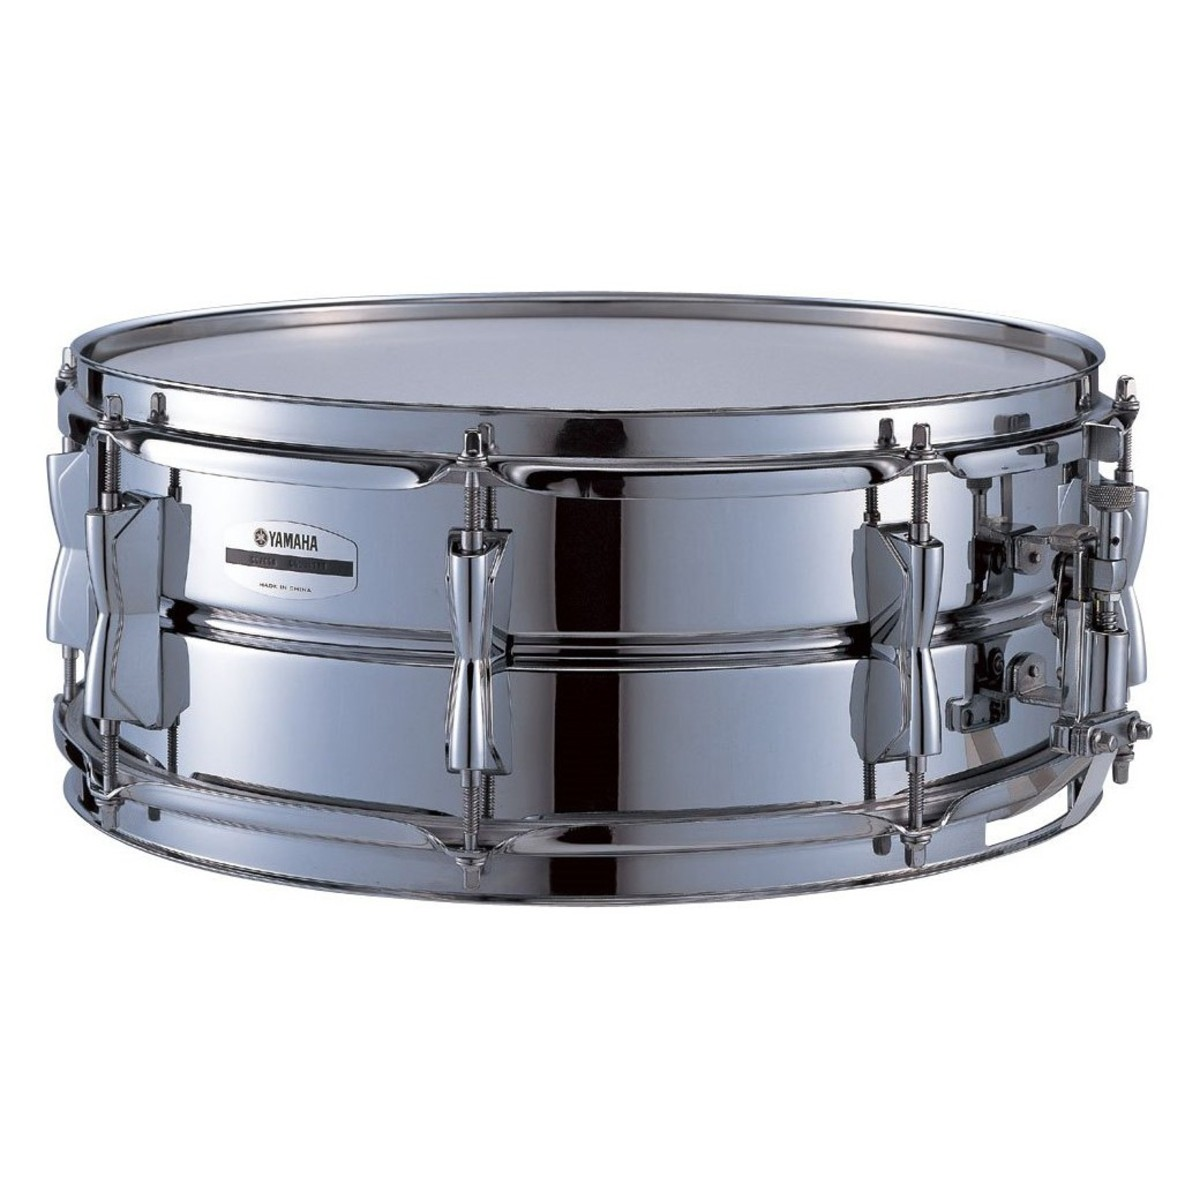 Yamaha SD265A Stage Custom Snare 14 x 5.5